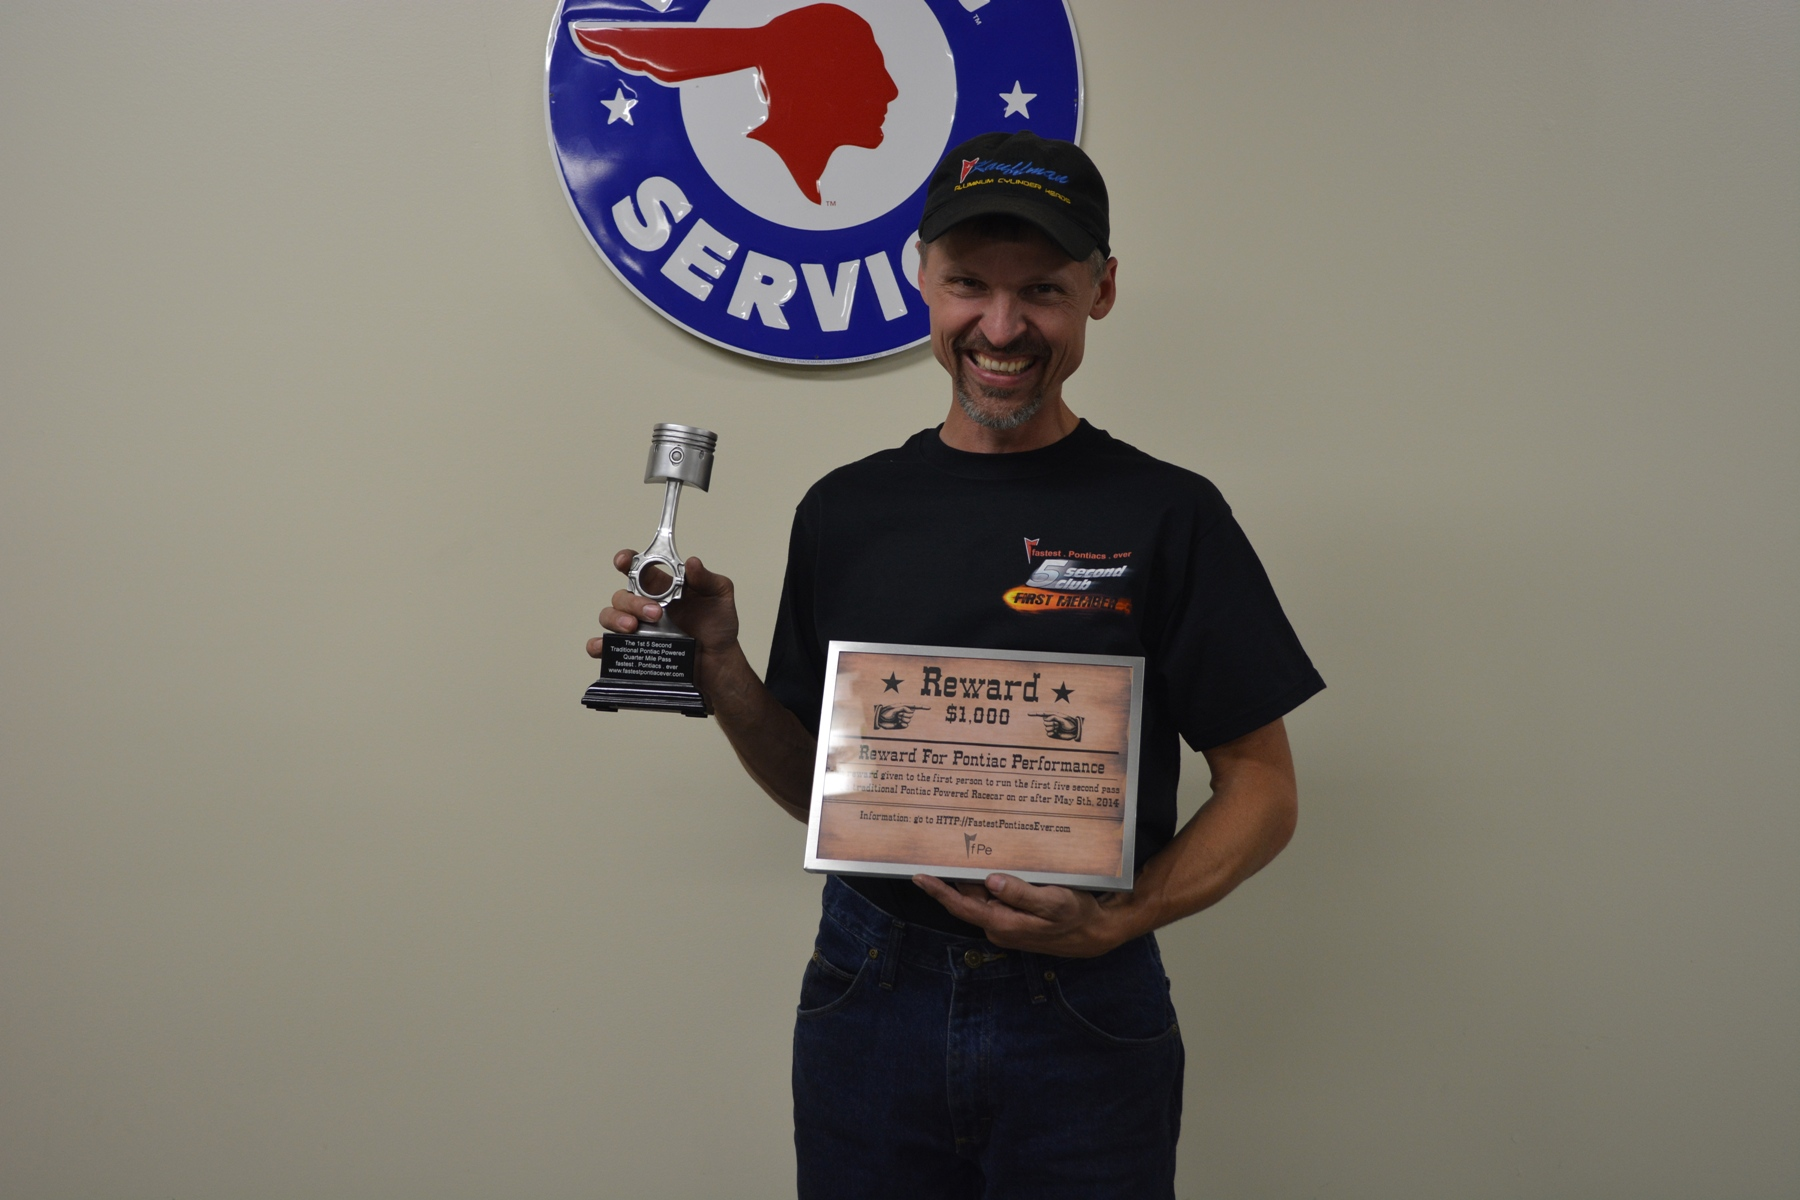 Jeff Kauffman with his fPe tropyh and award